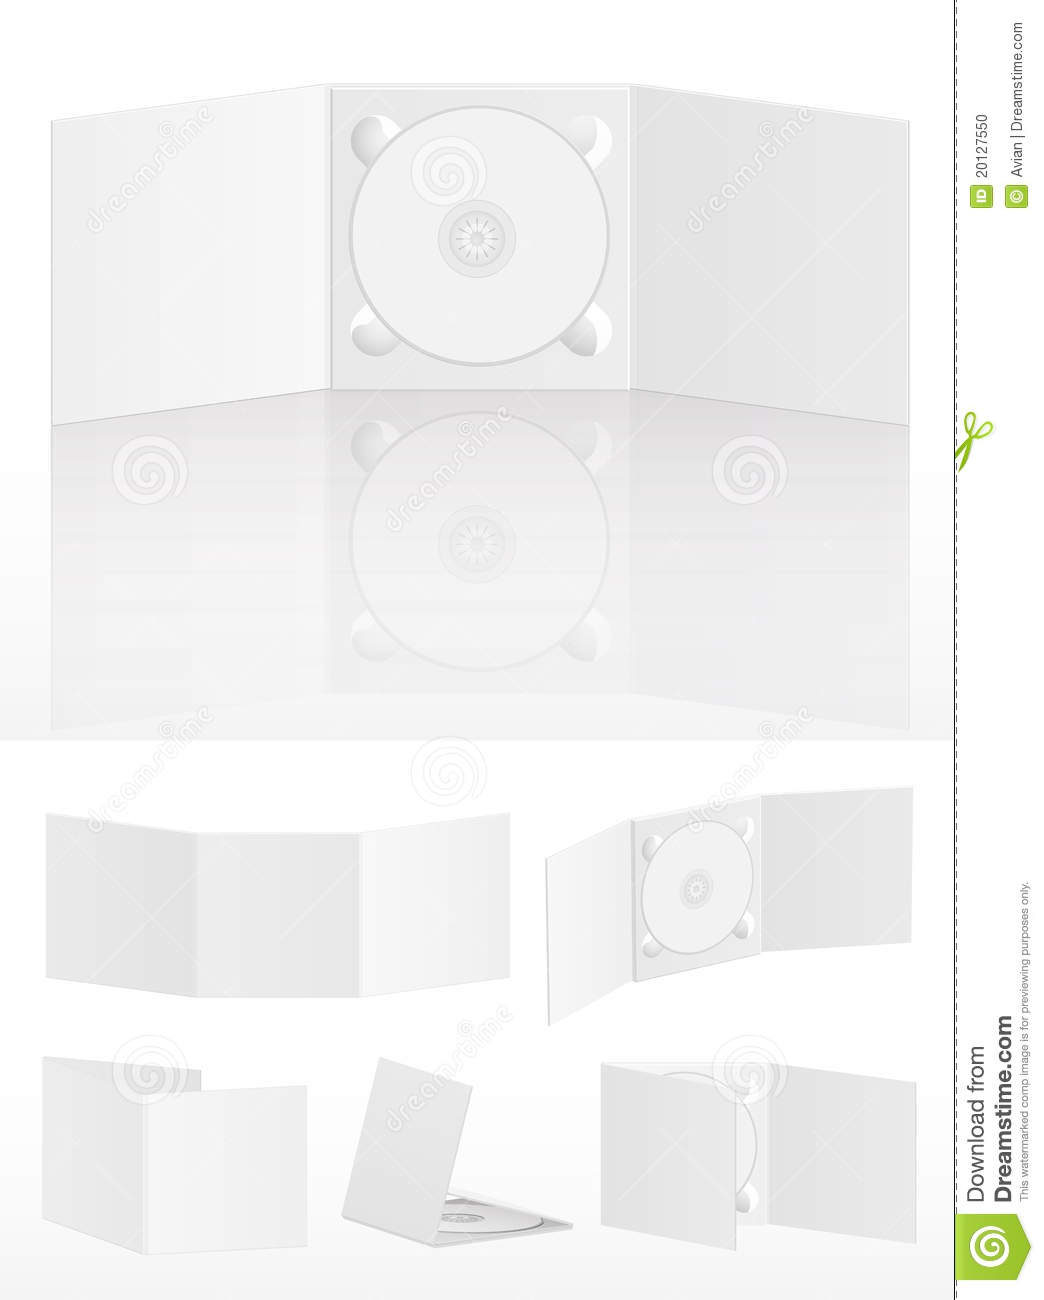 Set Of Blank Cd Covers On White Stock Photo - Image: 20127550